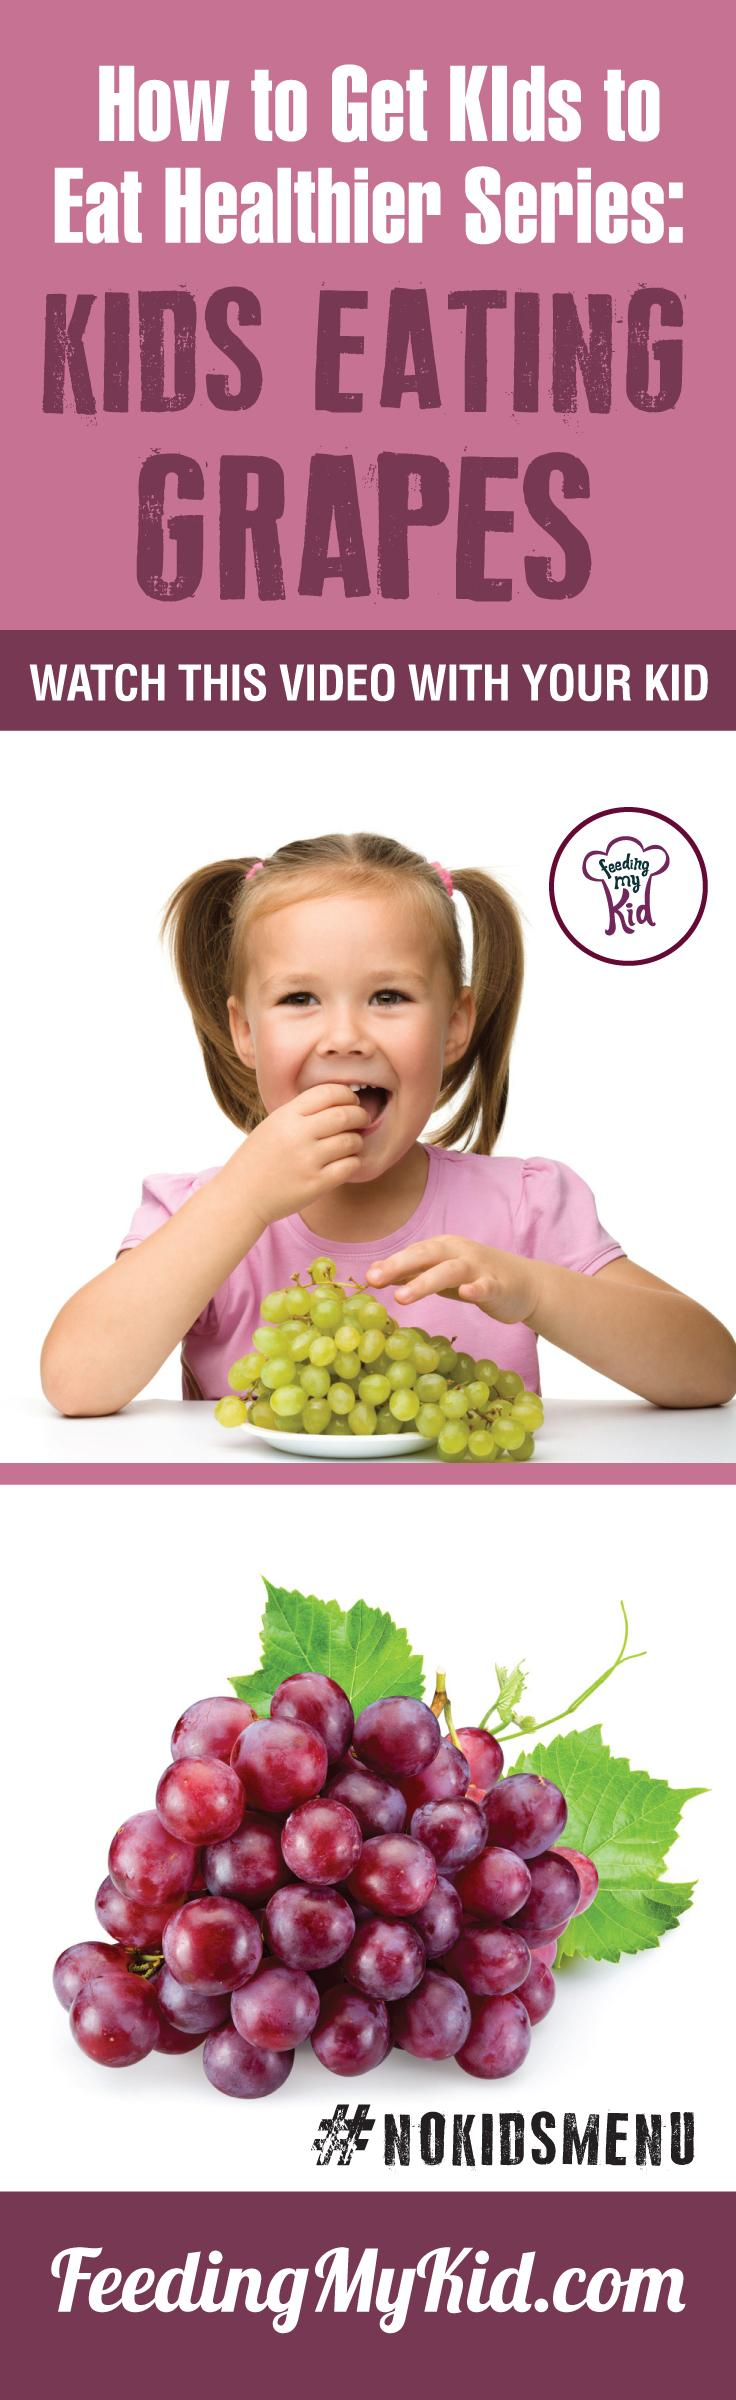 Want to get your children eating grapes? Teach your kids how to eat more vegetables and fruits. Watch these videos with your kids of children eating veggies and fruits and get your kids to eat veggies and fruits. Find out how it works here. Feeding My Kid is a filled with all the information you need about how to raise your kids, from healthy tips to nutritious recipes. #pickyeating #getkidstoeat #grapes #NoKidsMenu